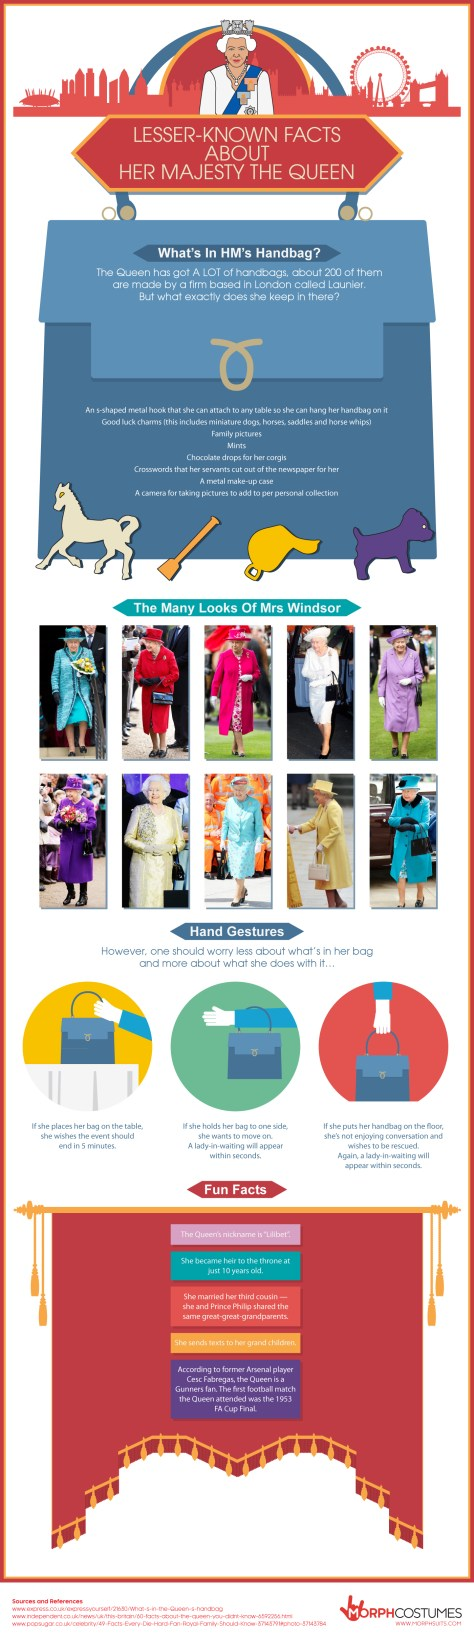 Lesser-Known-Facts-About-Her-Majesty-The-Queen-Infographic